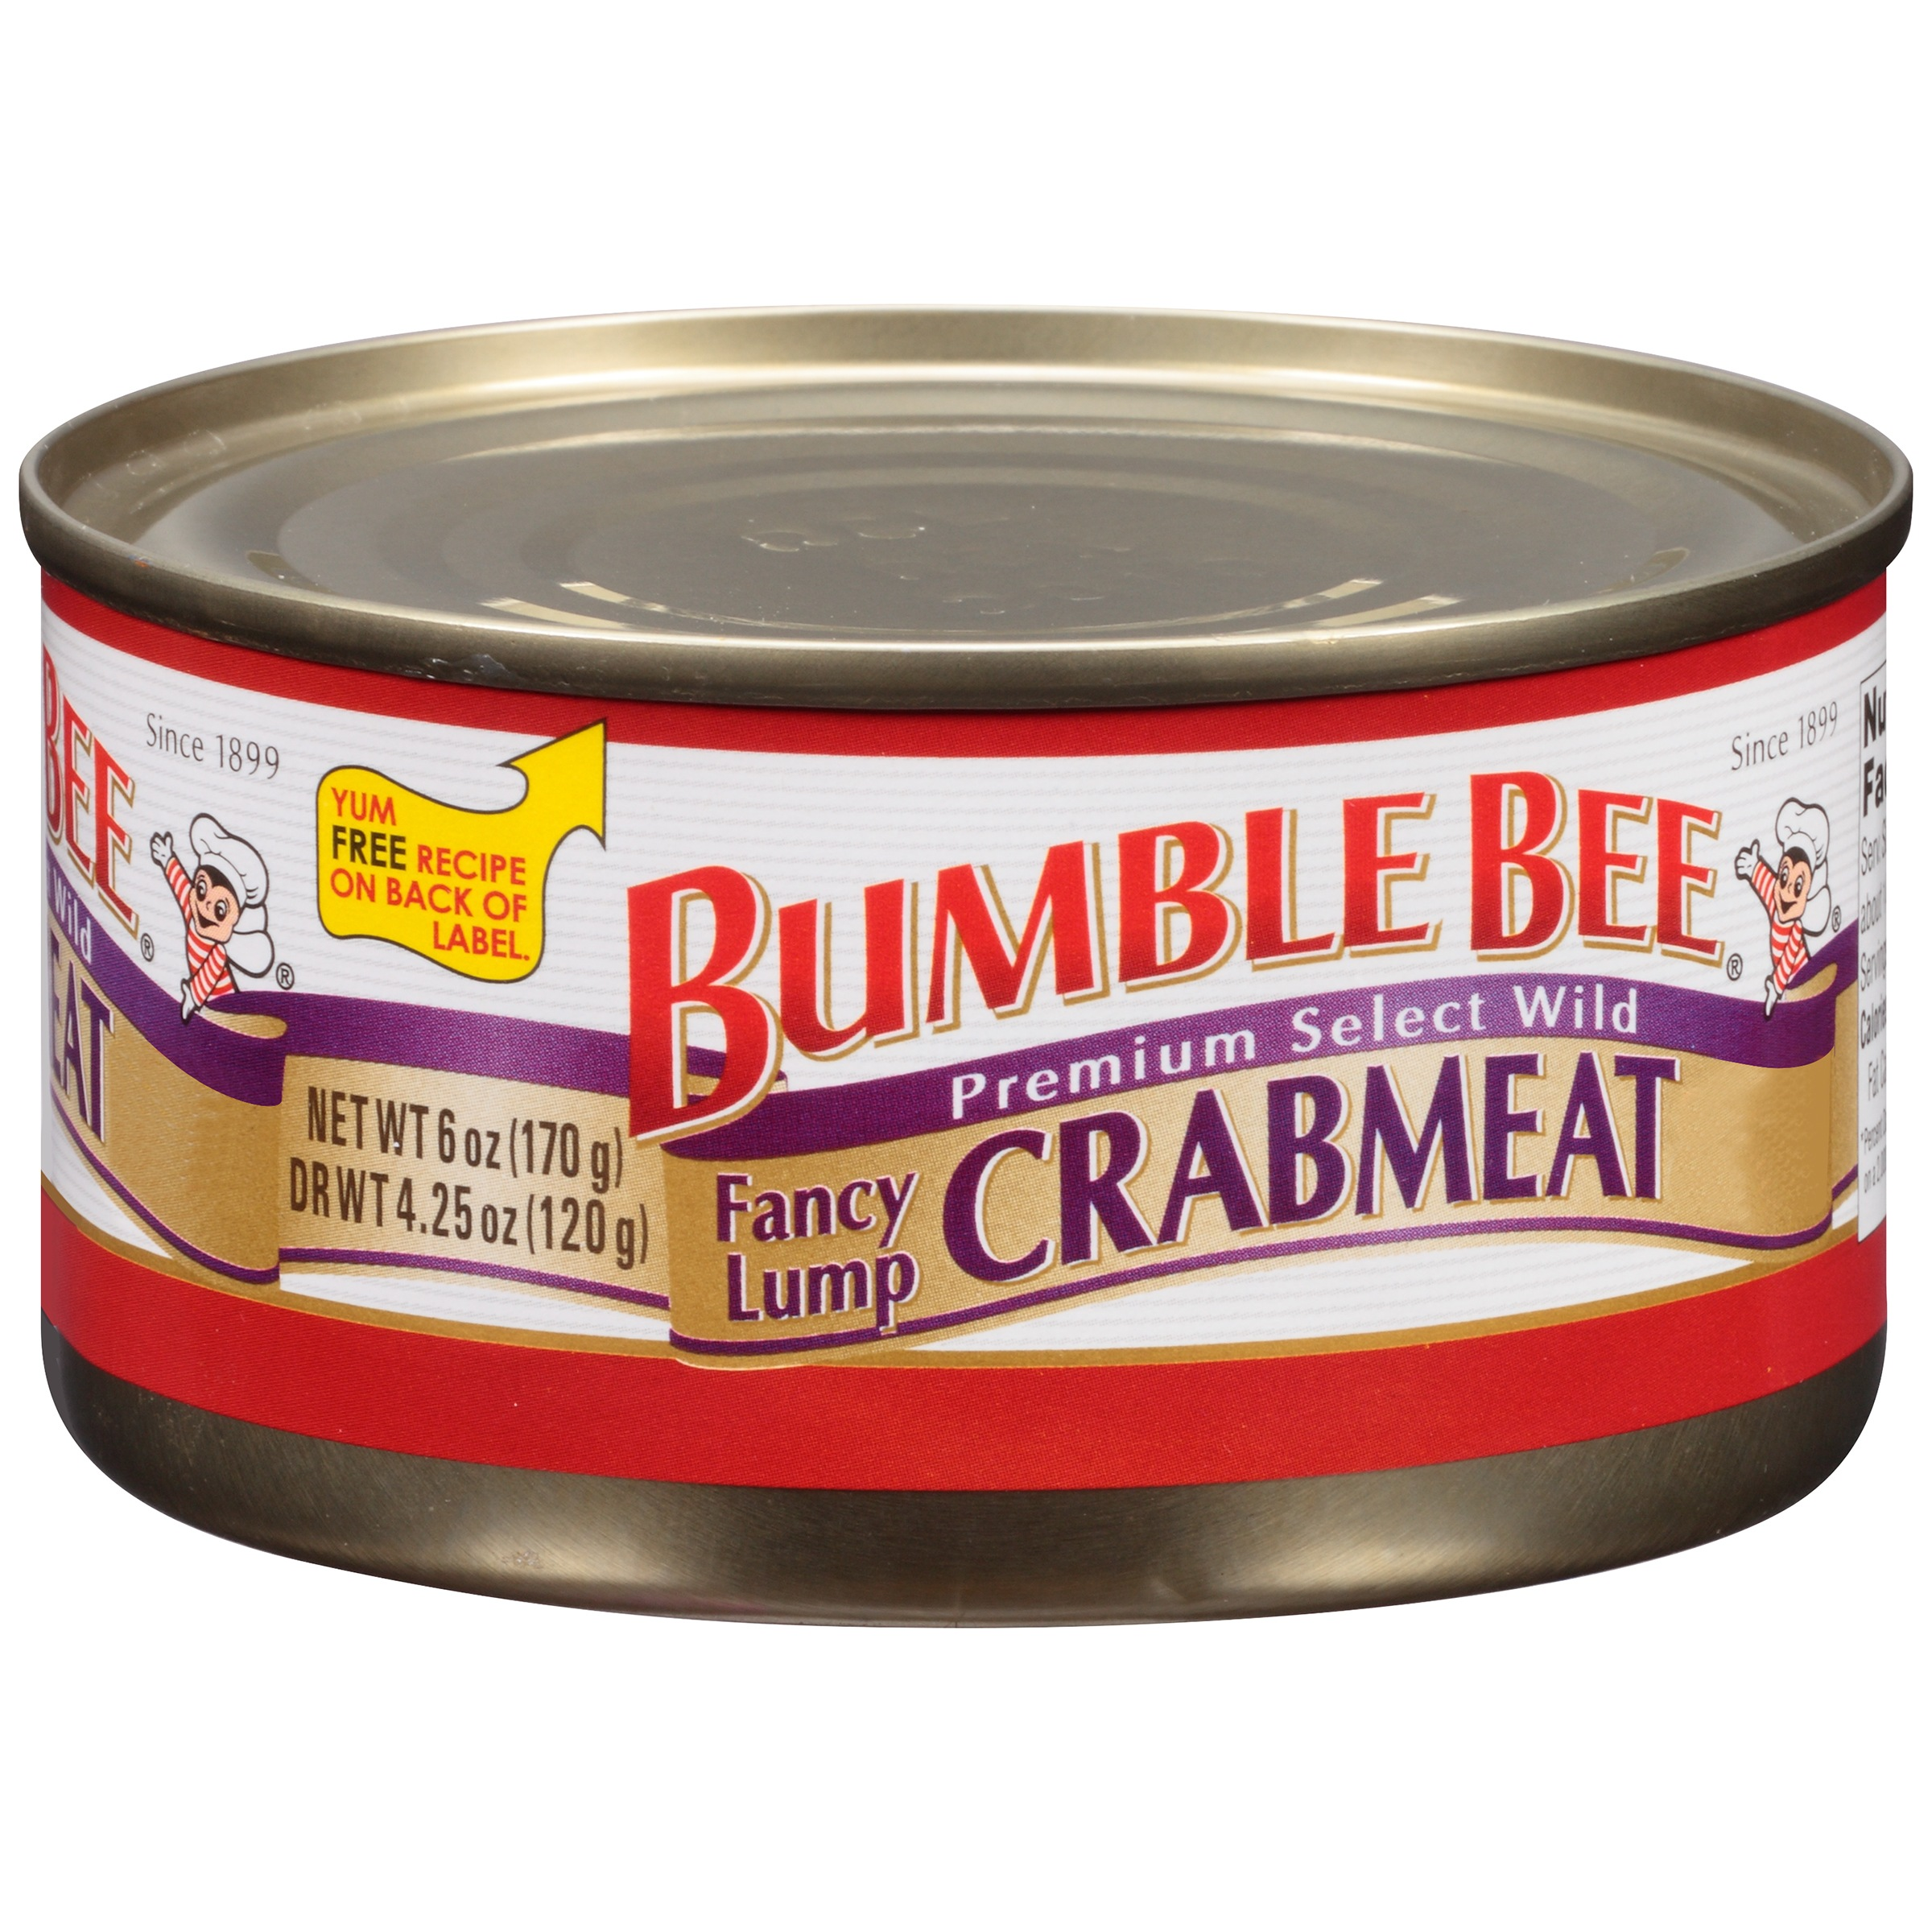 Bumble Bee Fancy Lump Crabmeat, 6.0 OZ by Bumble Bee Seafoods